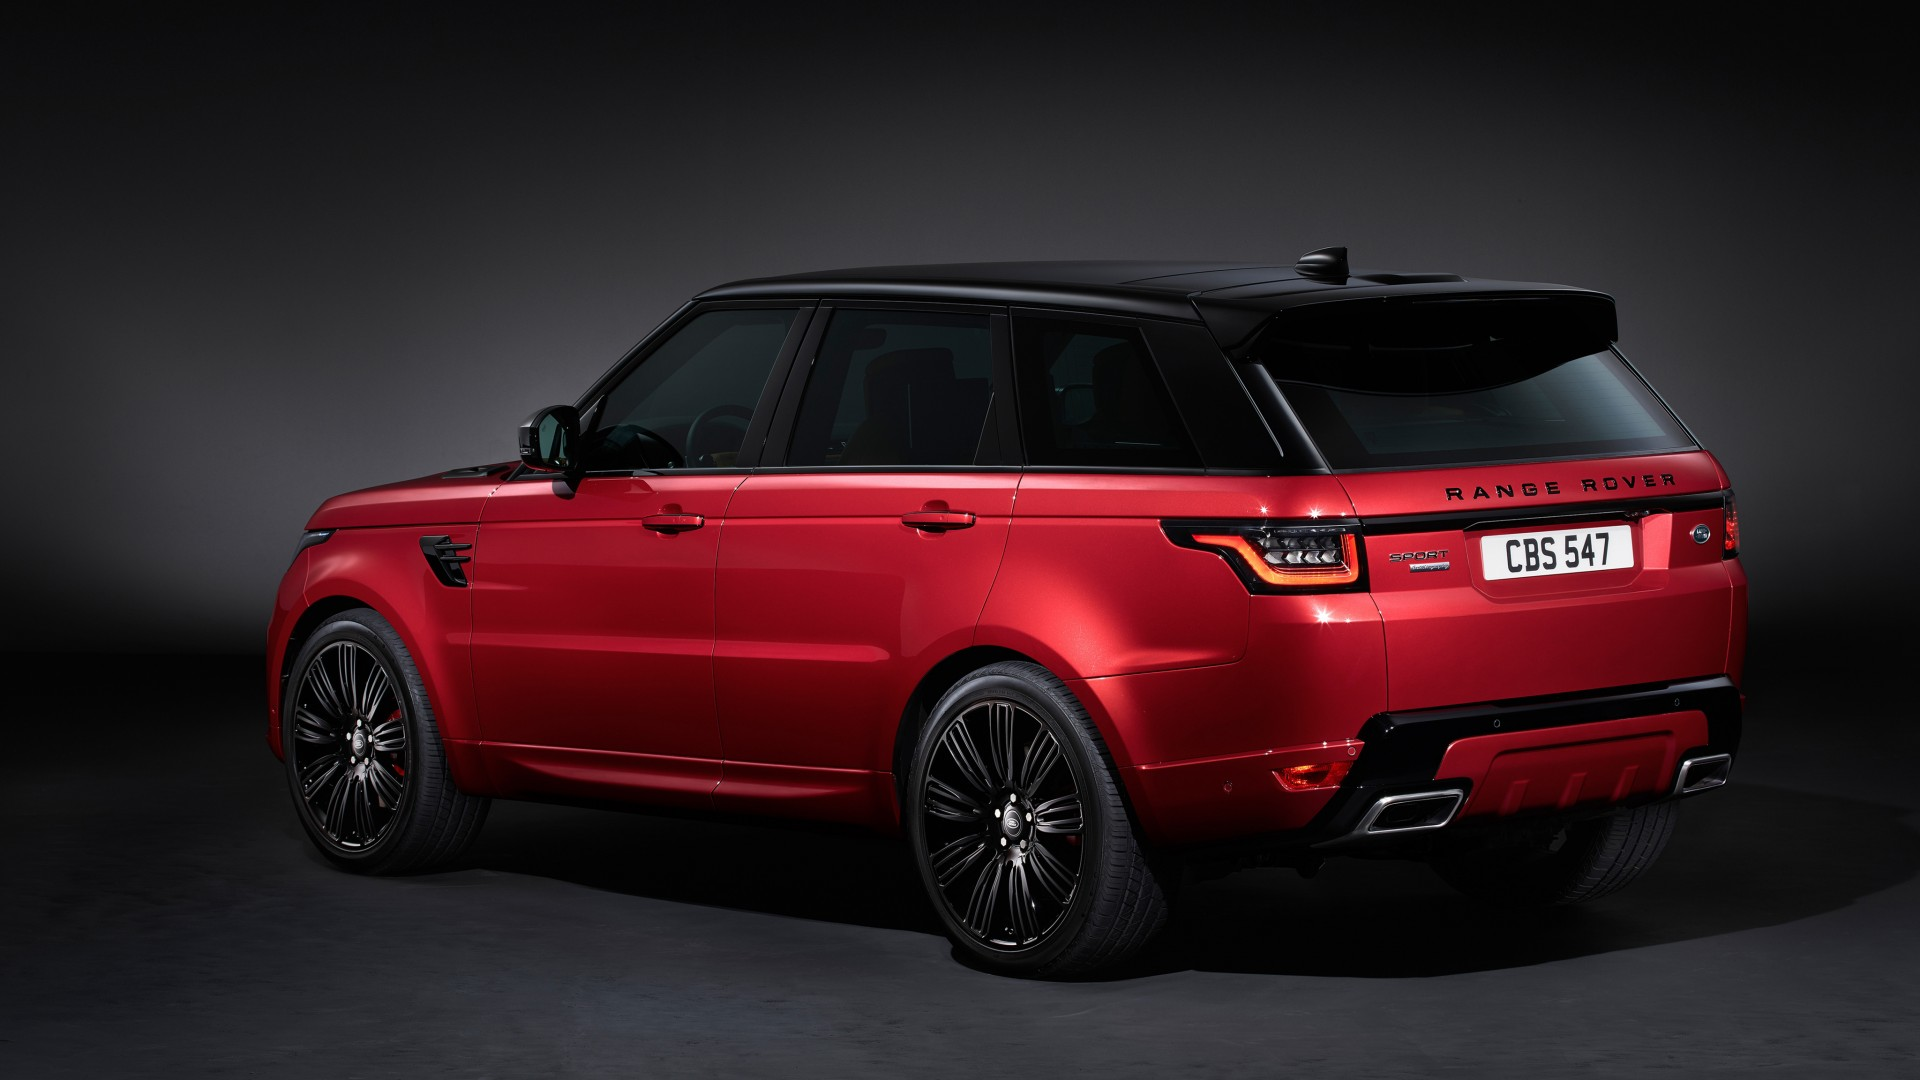 2017 range rover sport autobiography 4k 2 wallpaper hd car wallpapers id 8766. Black Bedroom Furniture Sets. Home Design Ideas